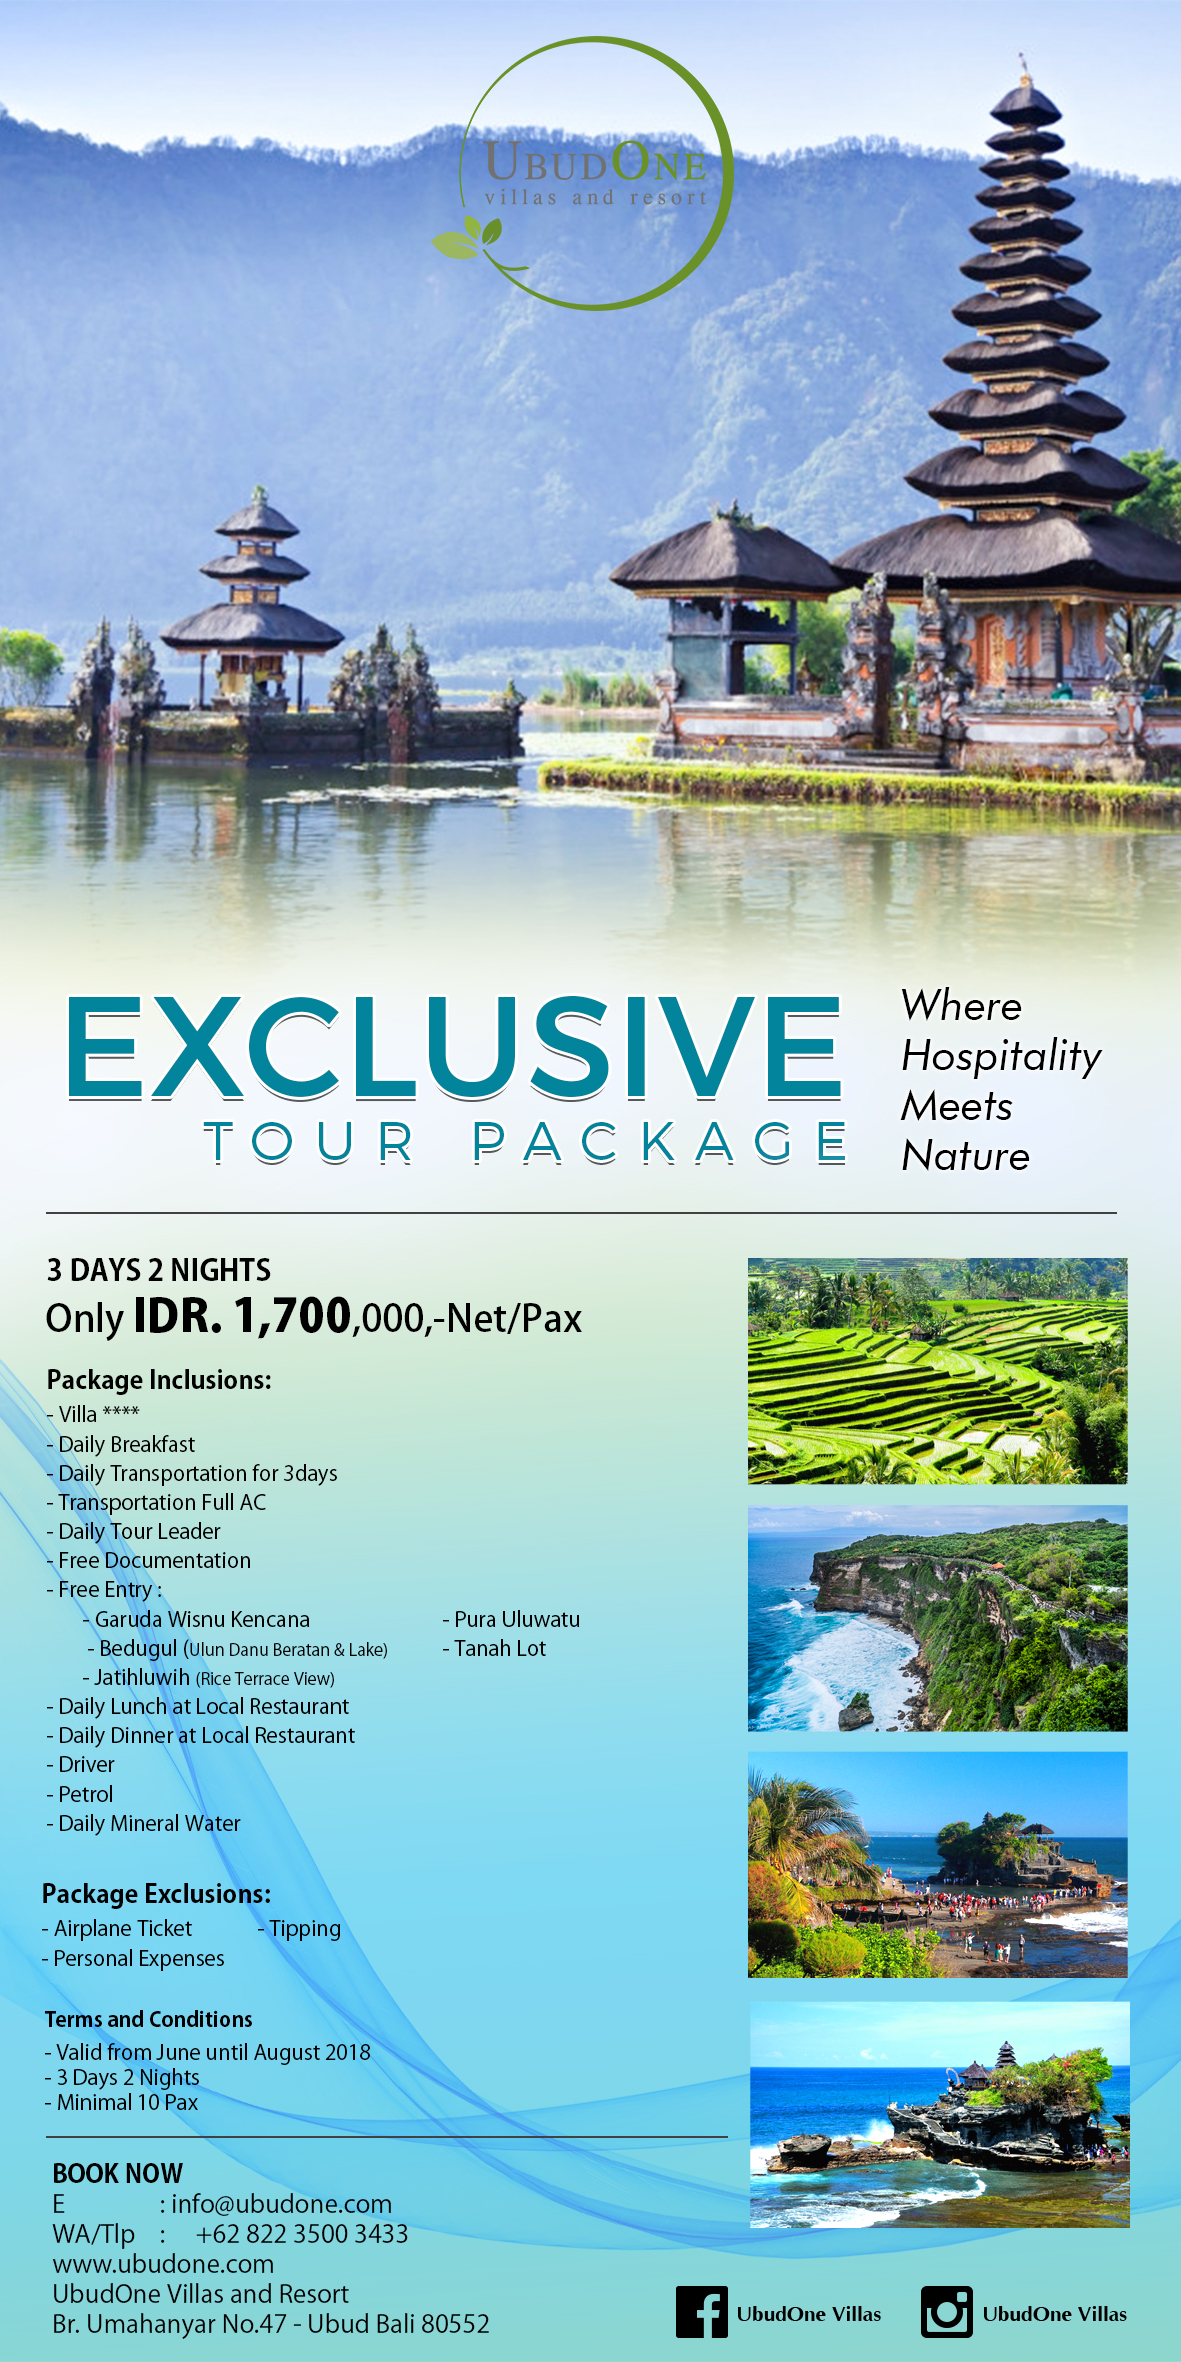 EXCLUSIVE TOUR PACKAGE